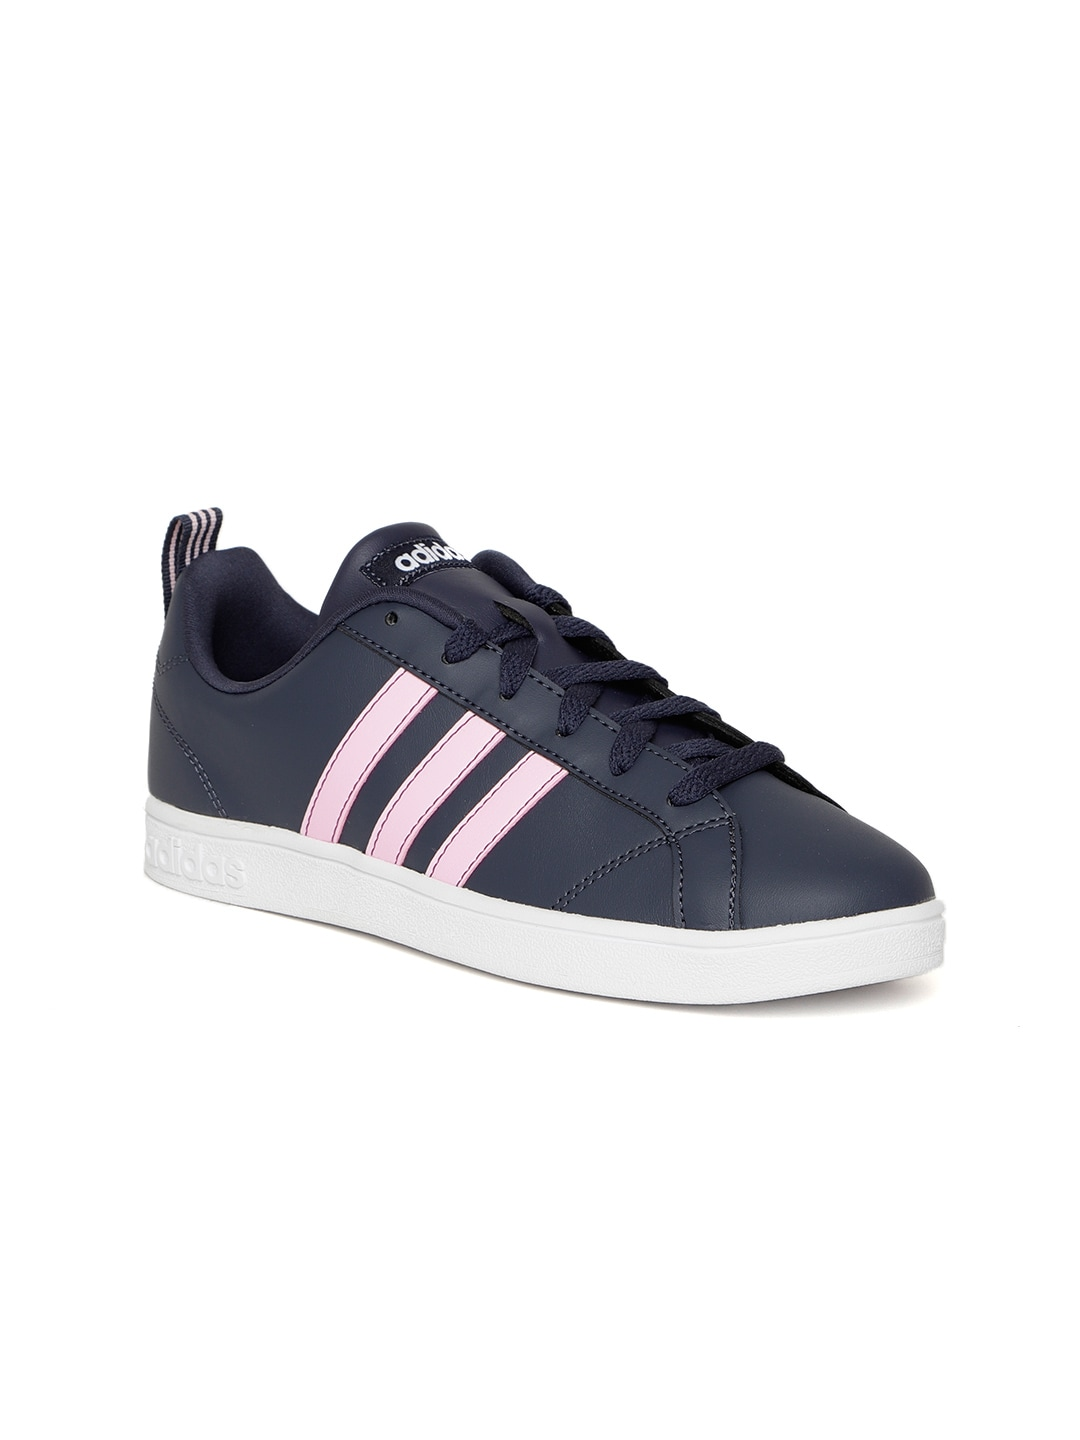 huge selection of af8bb 36a94 adidas - Exclusive adidas Online Store in India at Myntra